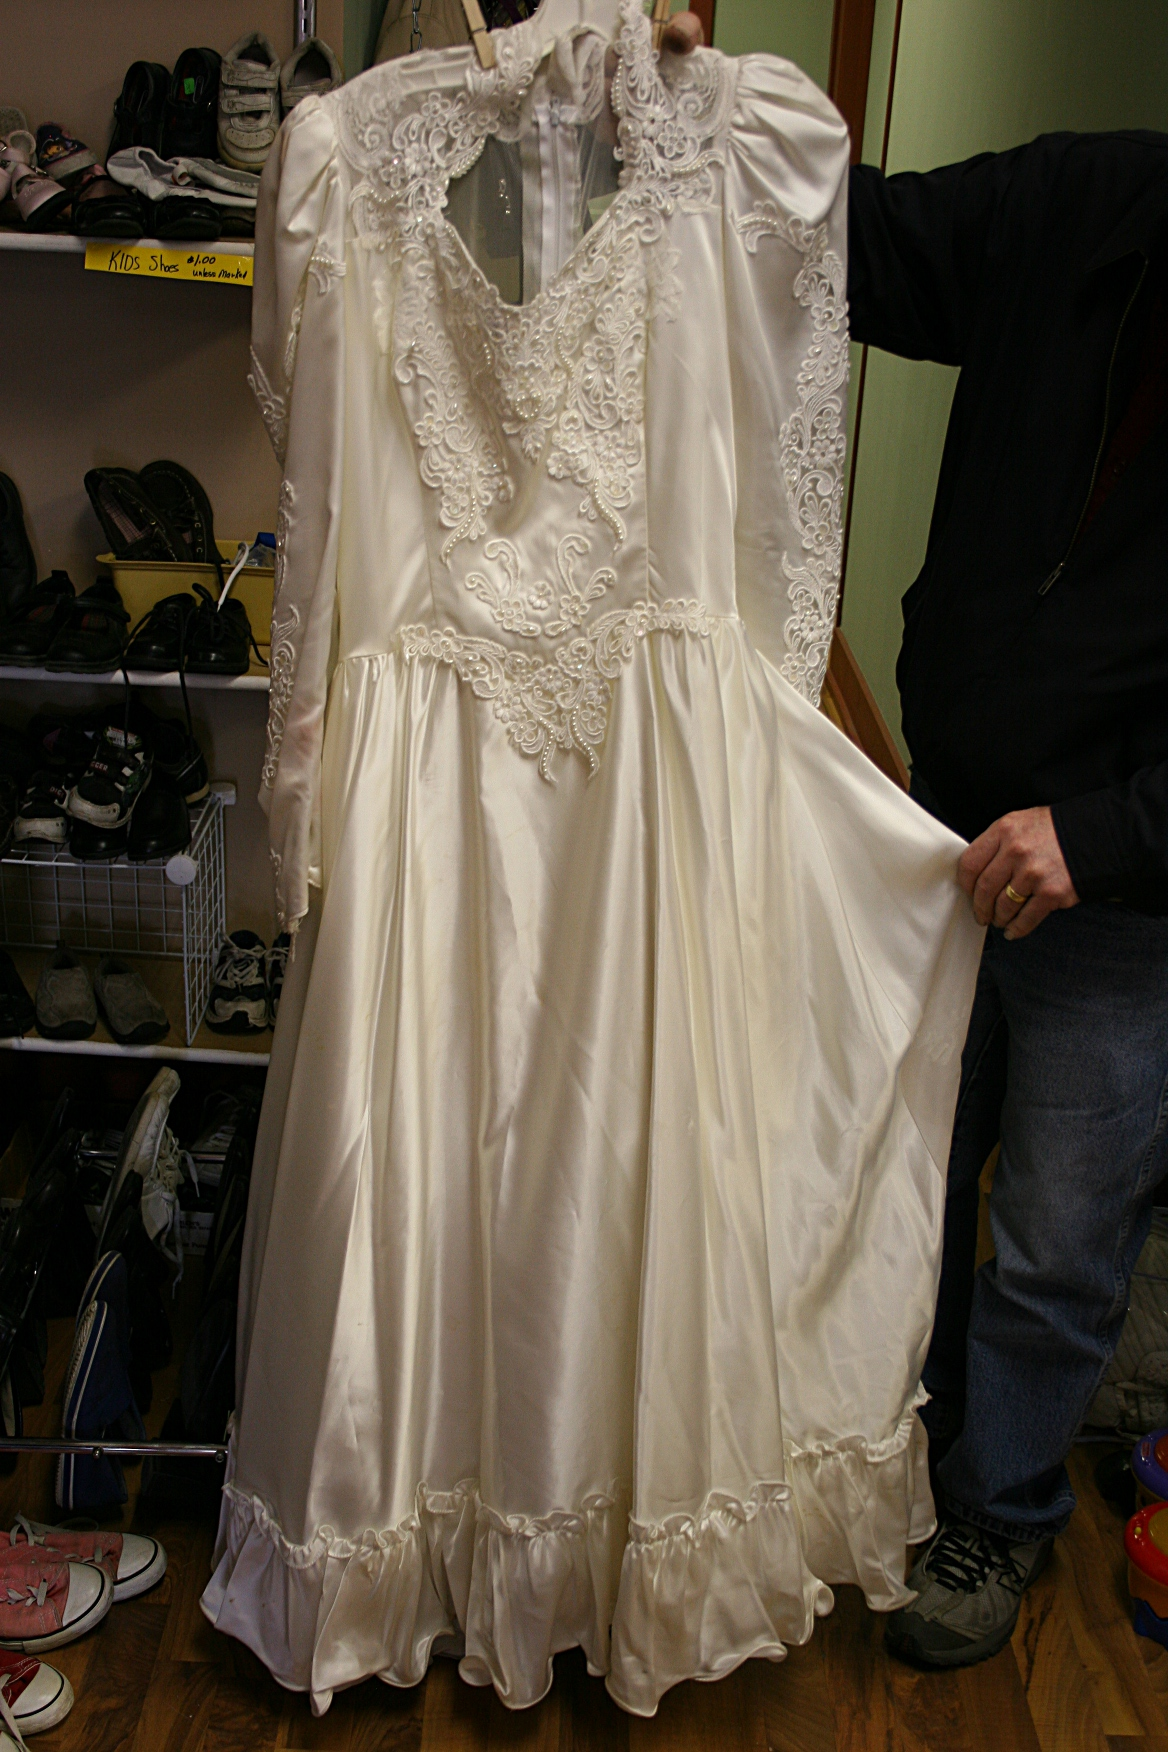 thrift shop for wedding dresses shop wedding dresses Thrift Shop For Wedding Dresses 60